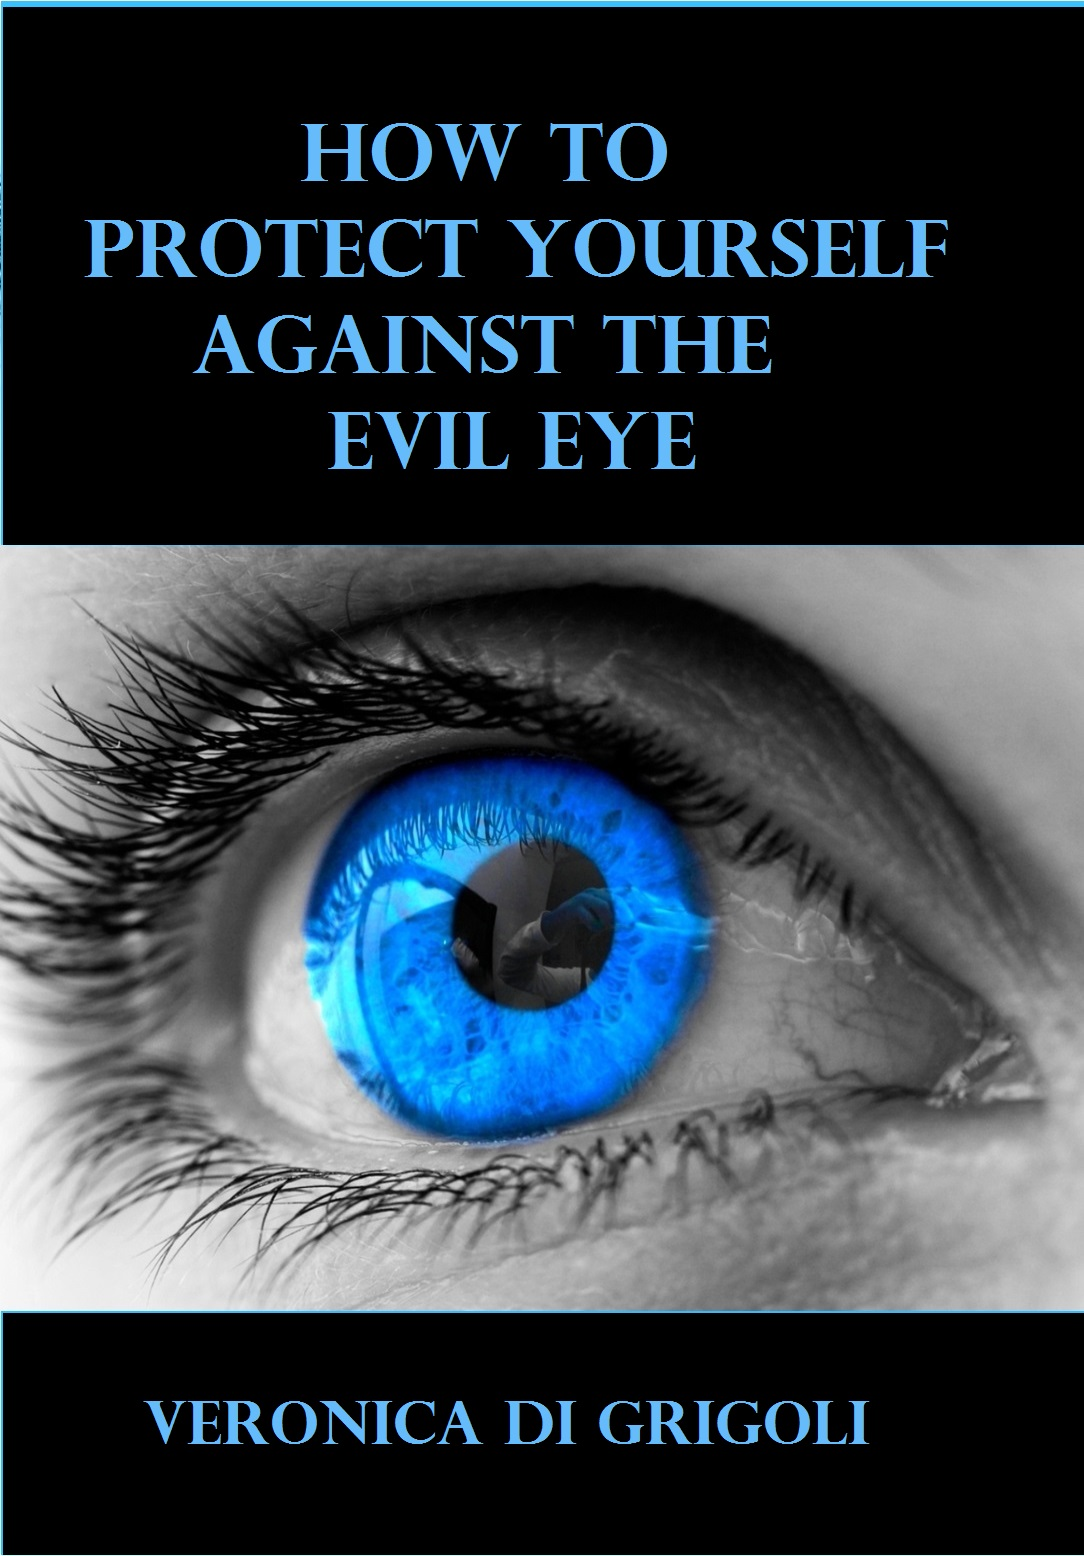 HOW TO PROTECT YOURSELF AGAINST THE EVIL EYE